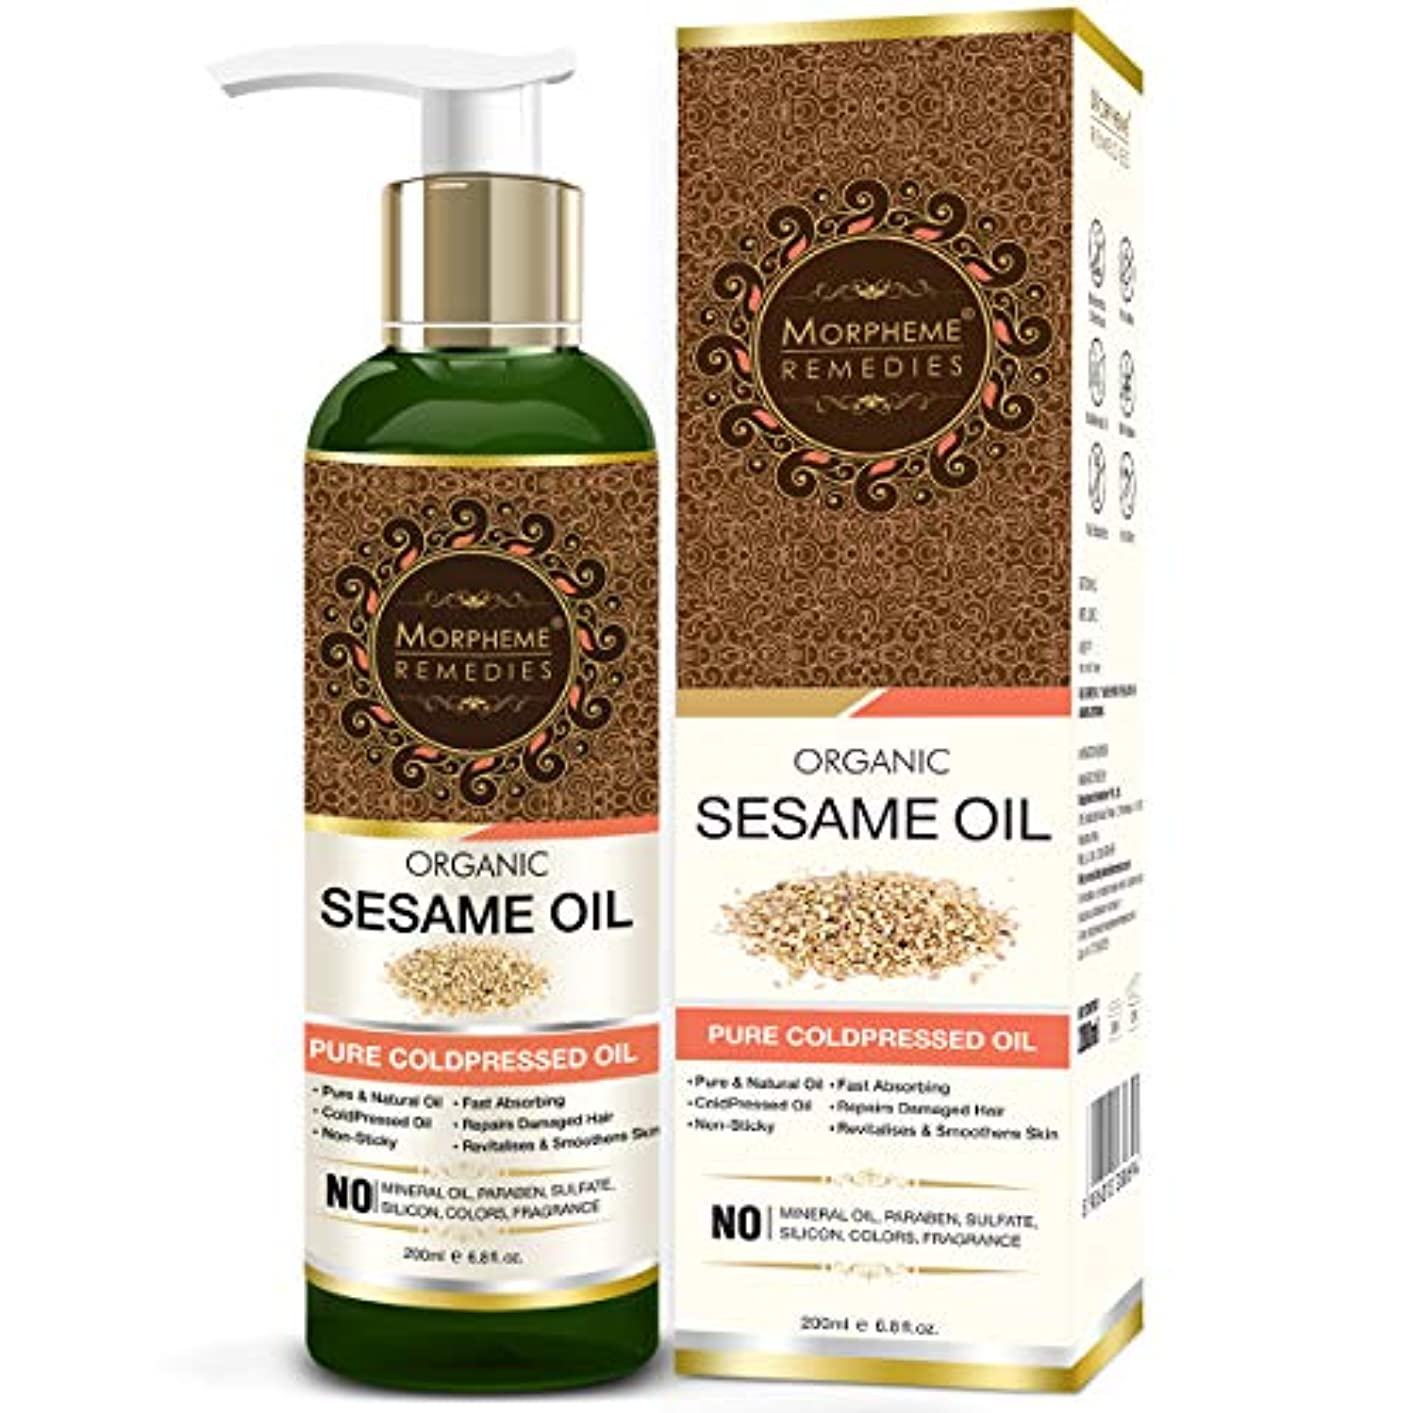 母可決ブラウズMorpheme Remedies Organic Sesame Oil (Pure ColdPressed Oil) For Hair, Body, Skin Care, Massage, 200 ml